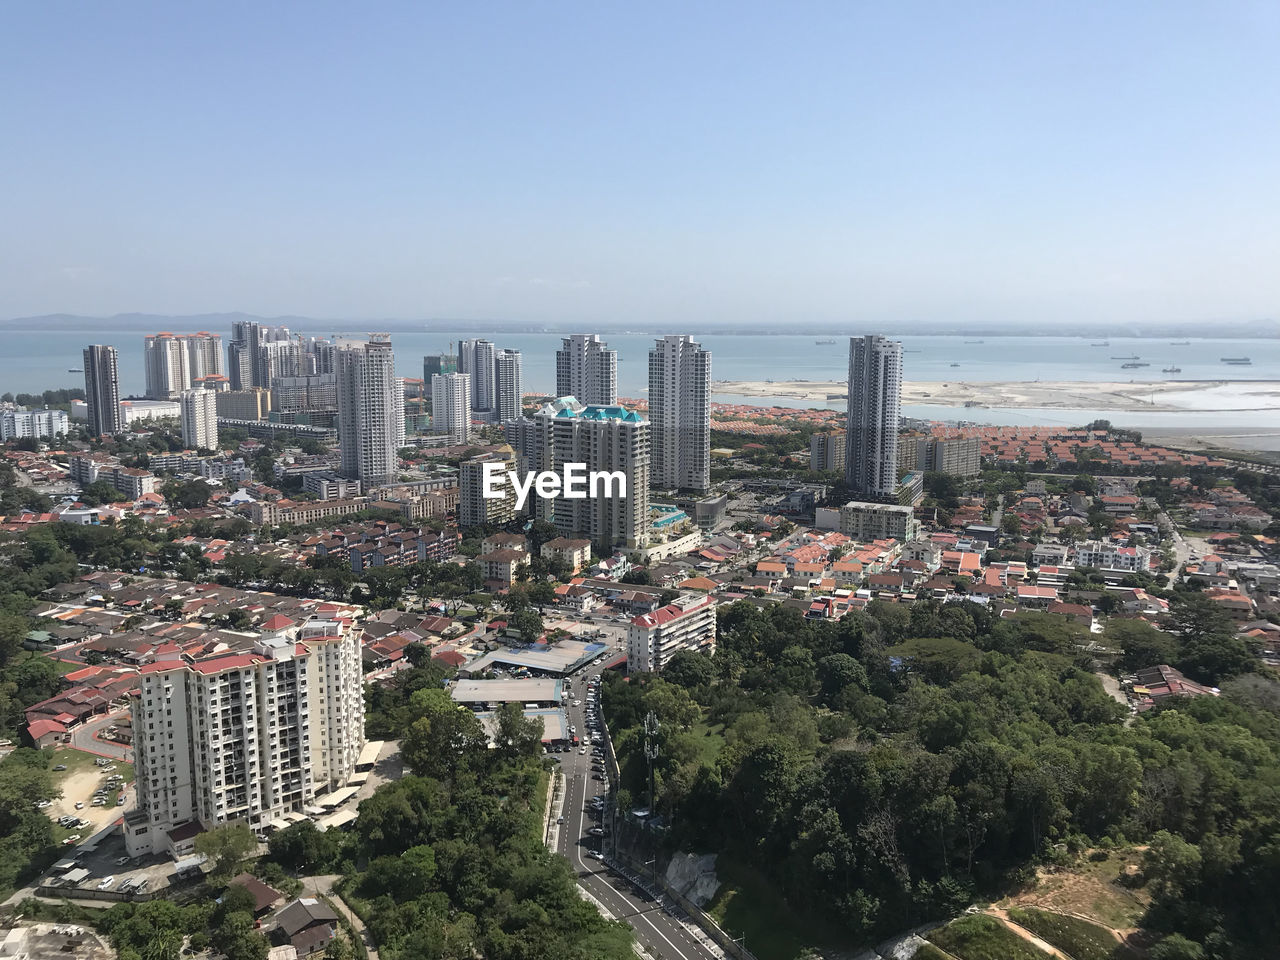 architecture, cityscape, skyscraper, building exterior, city, high angle view, sea, clear sky, day, no people, built structure, tree, outdoors, downtown district, sky, modern, growth, water, urban skyline, nature